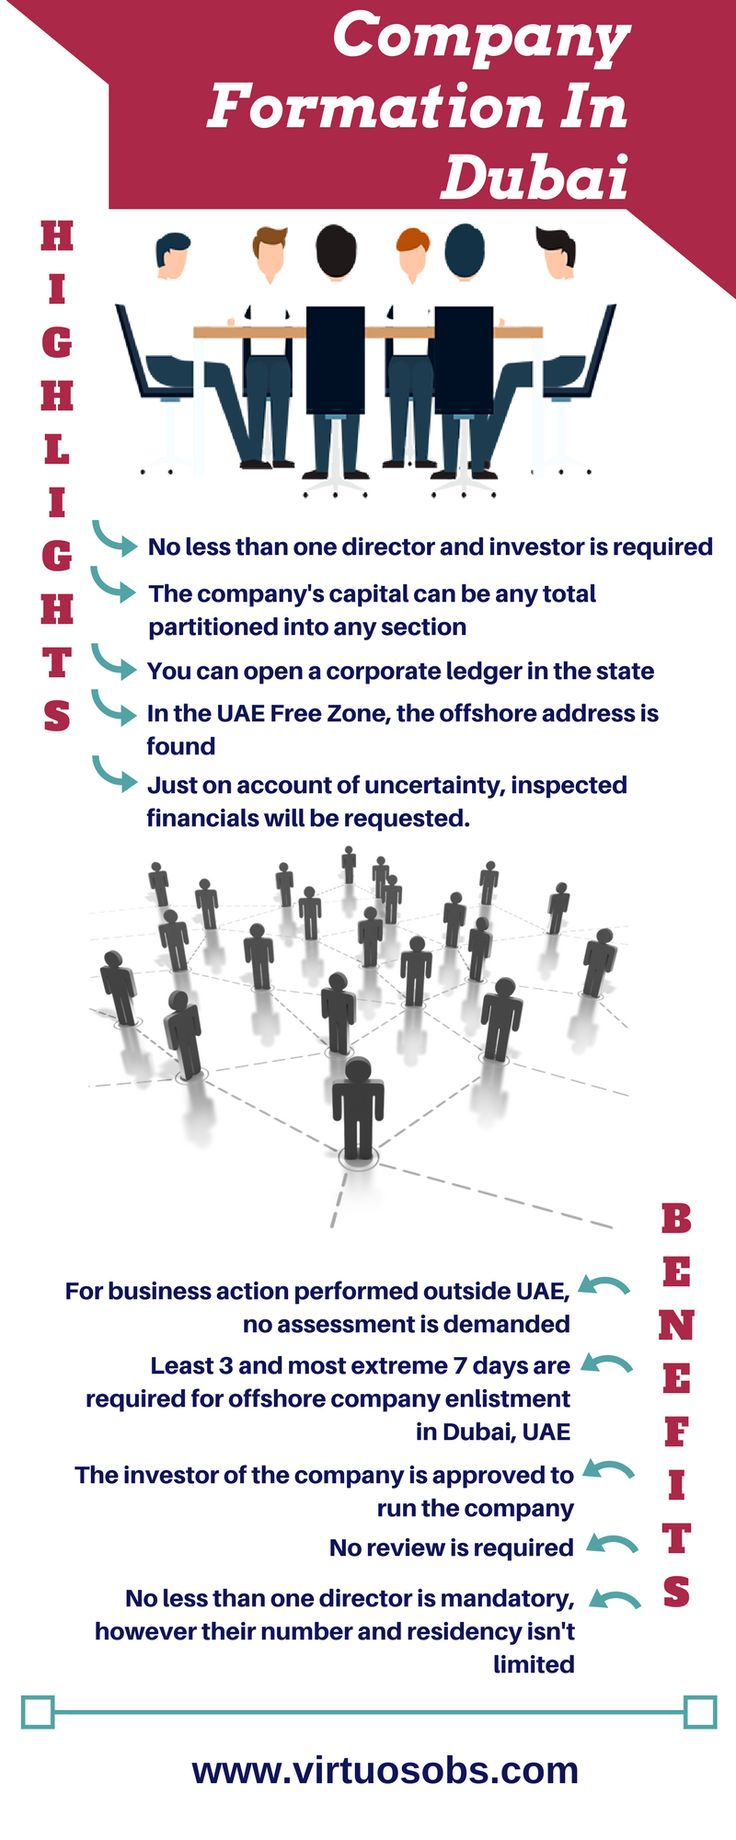 Starting a business in another country requires a thorough research and most of the times appealing to the services of professionals. The company incorporation procedure in Dubai resembles the procedures in most European countries provided that the foreign investors have acquired all the information about the business activity they will undertake and know all the business licensing requirements.